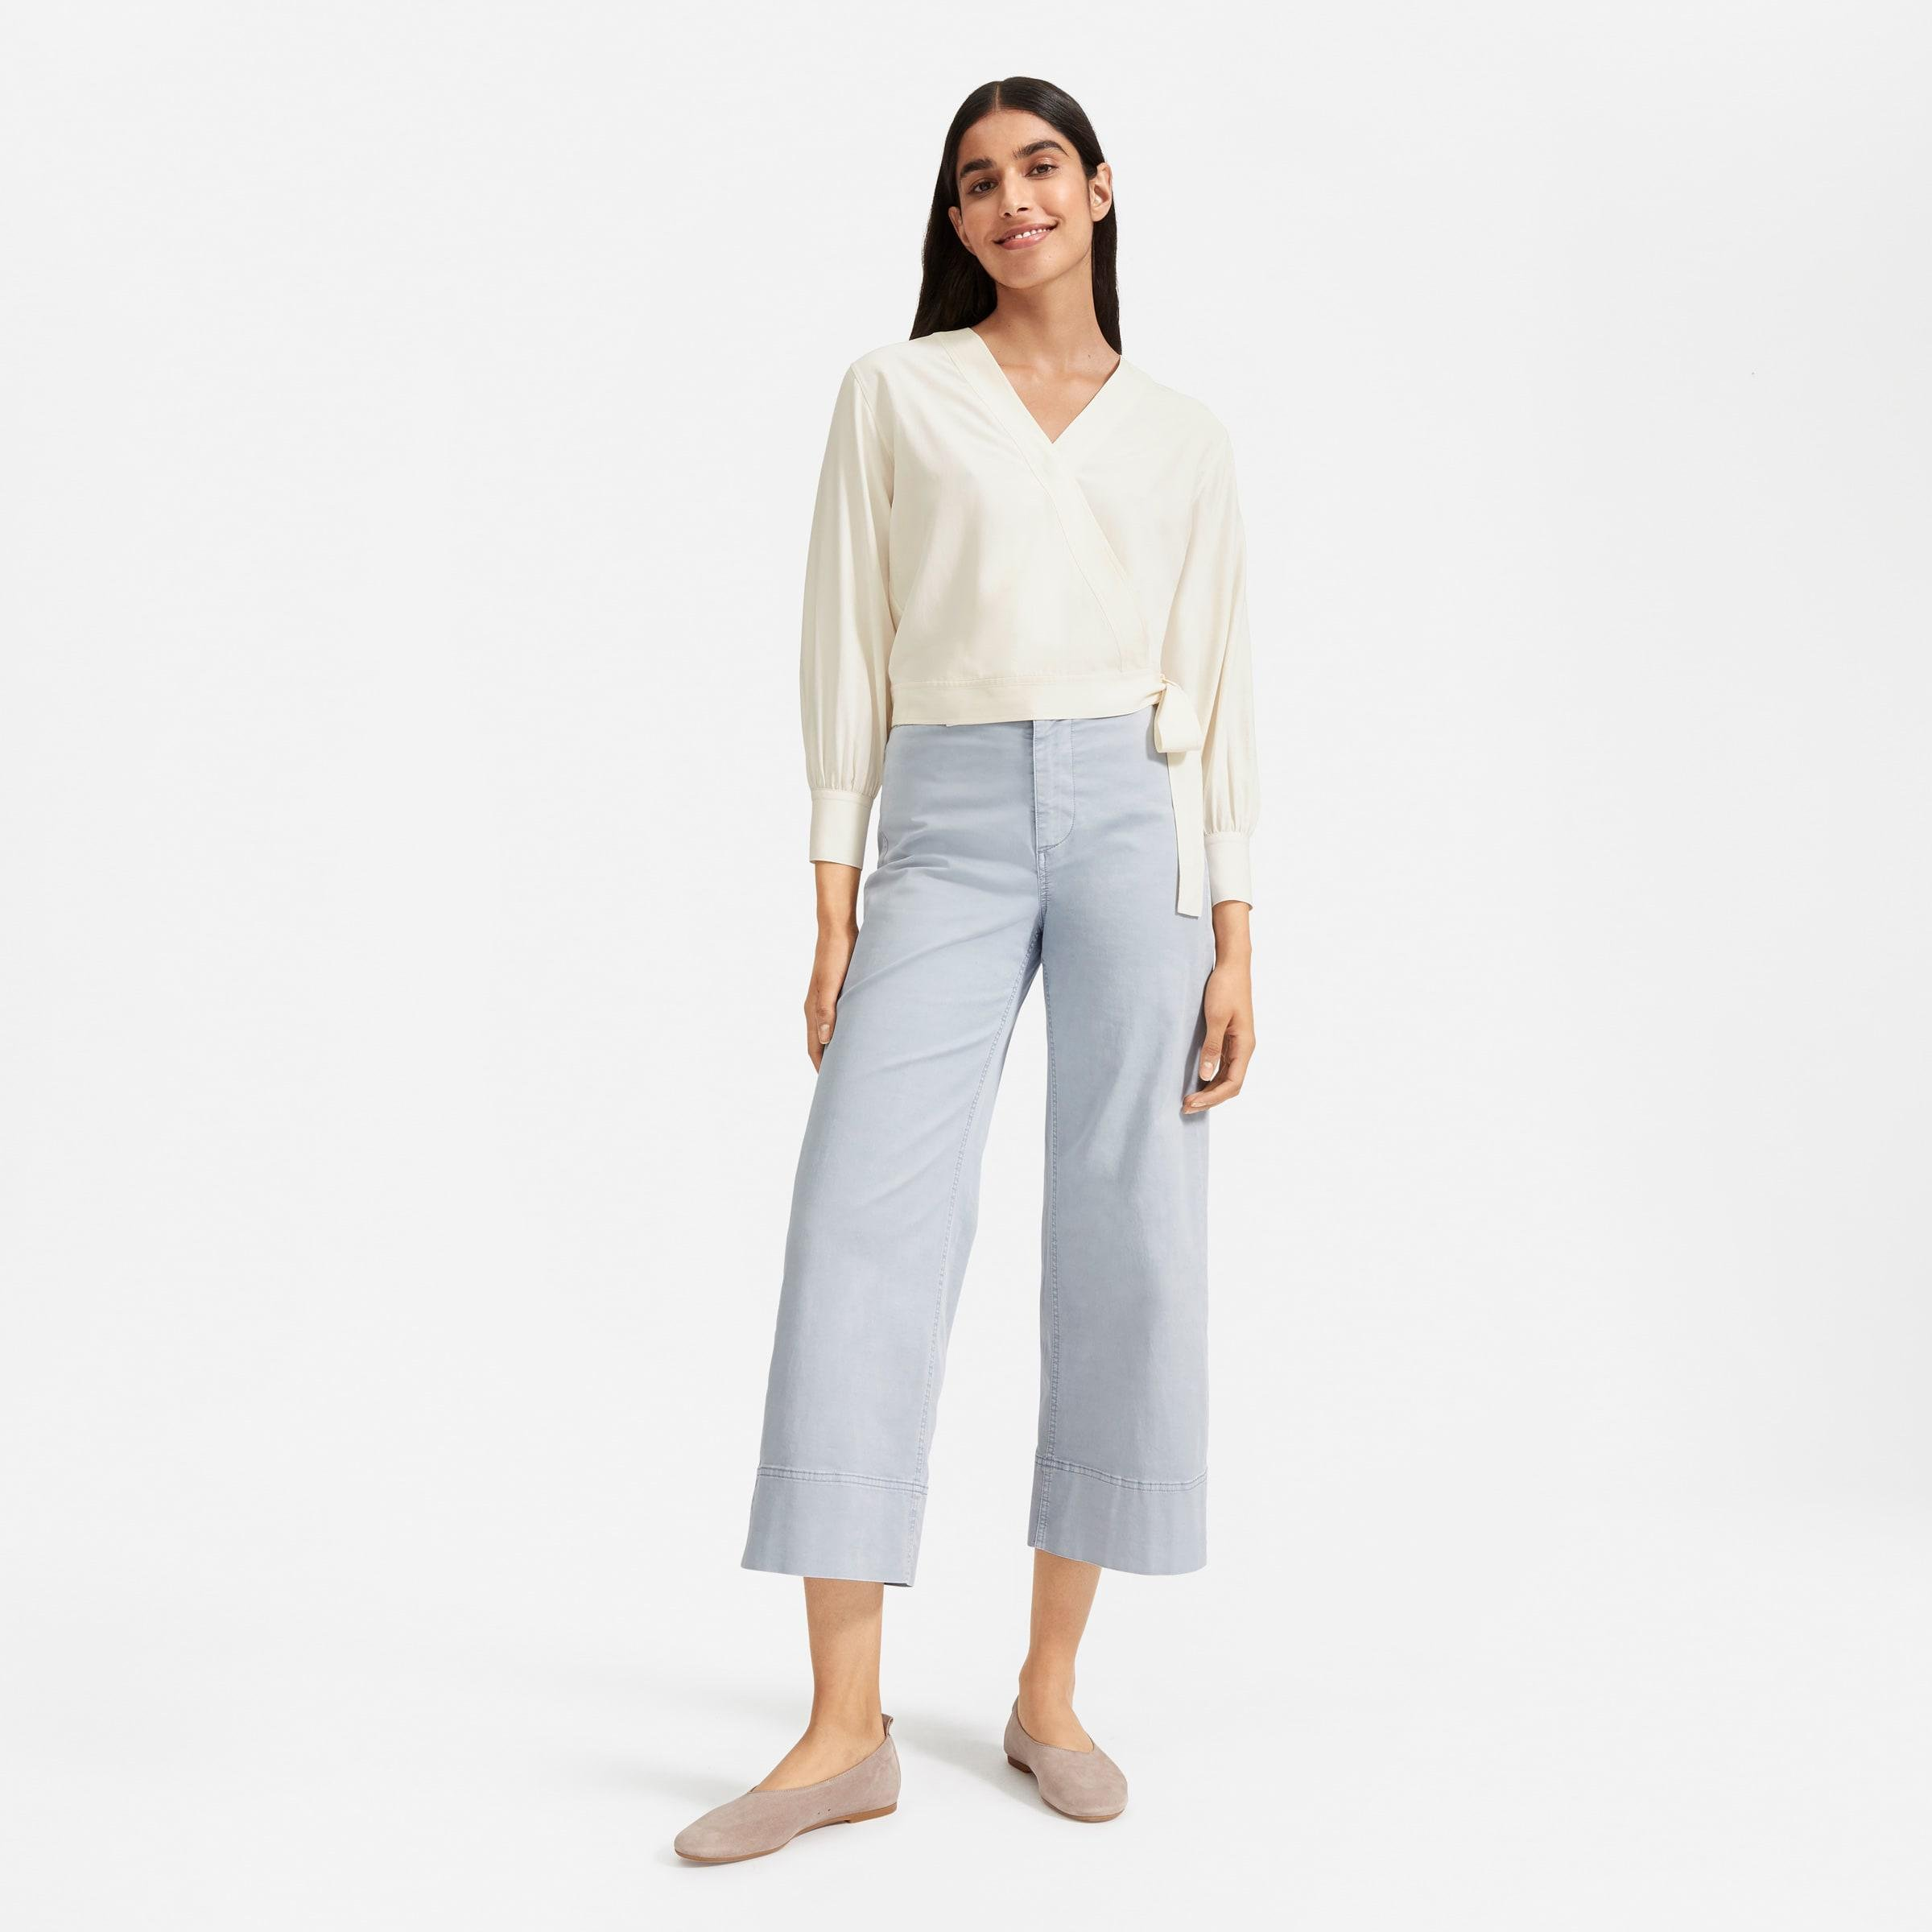 The Washable Silk Wrap Top